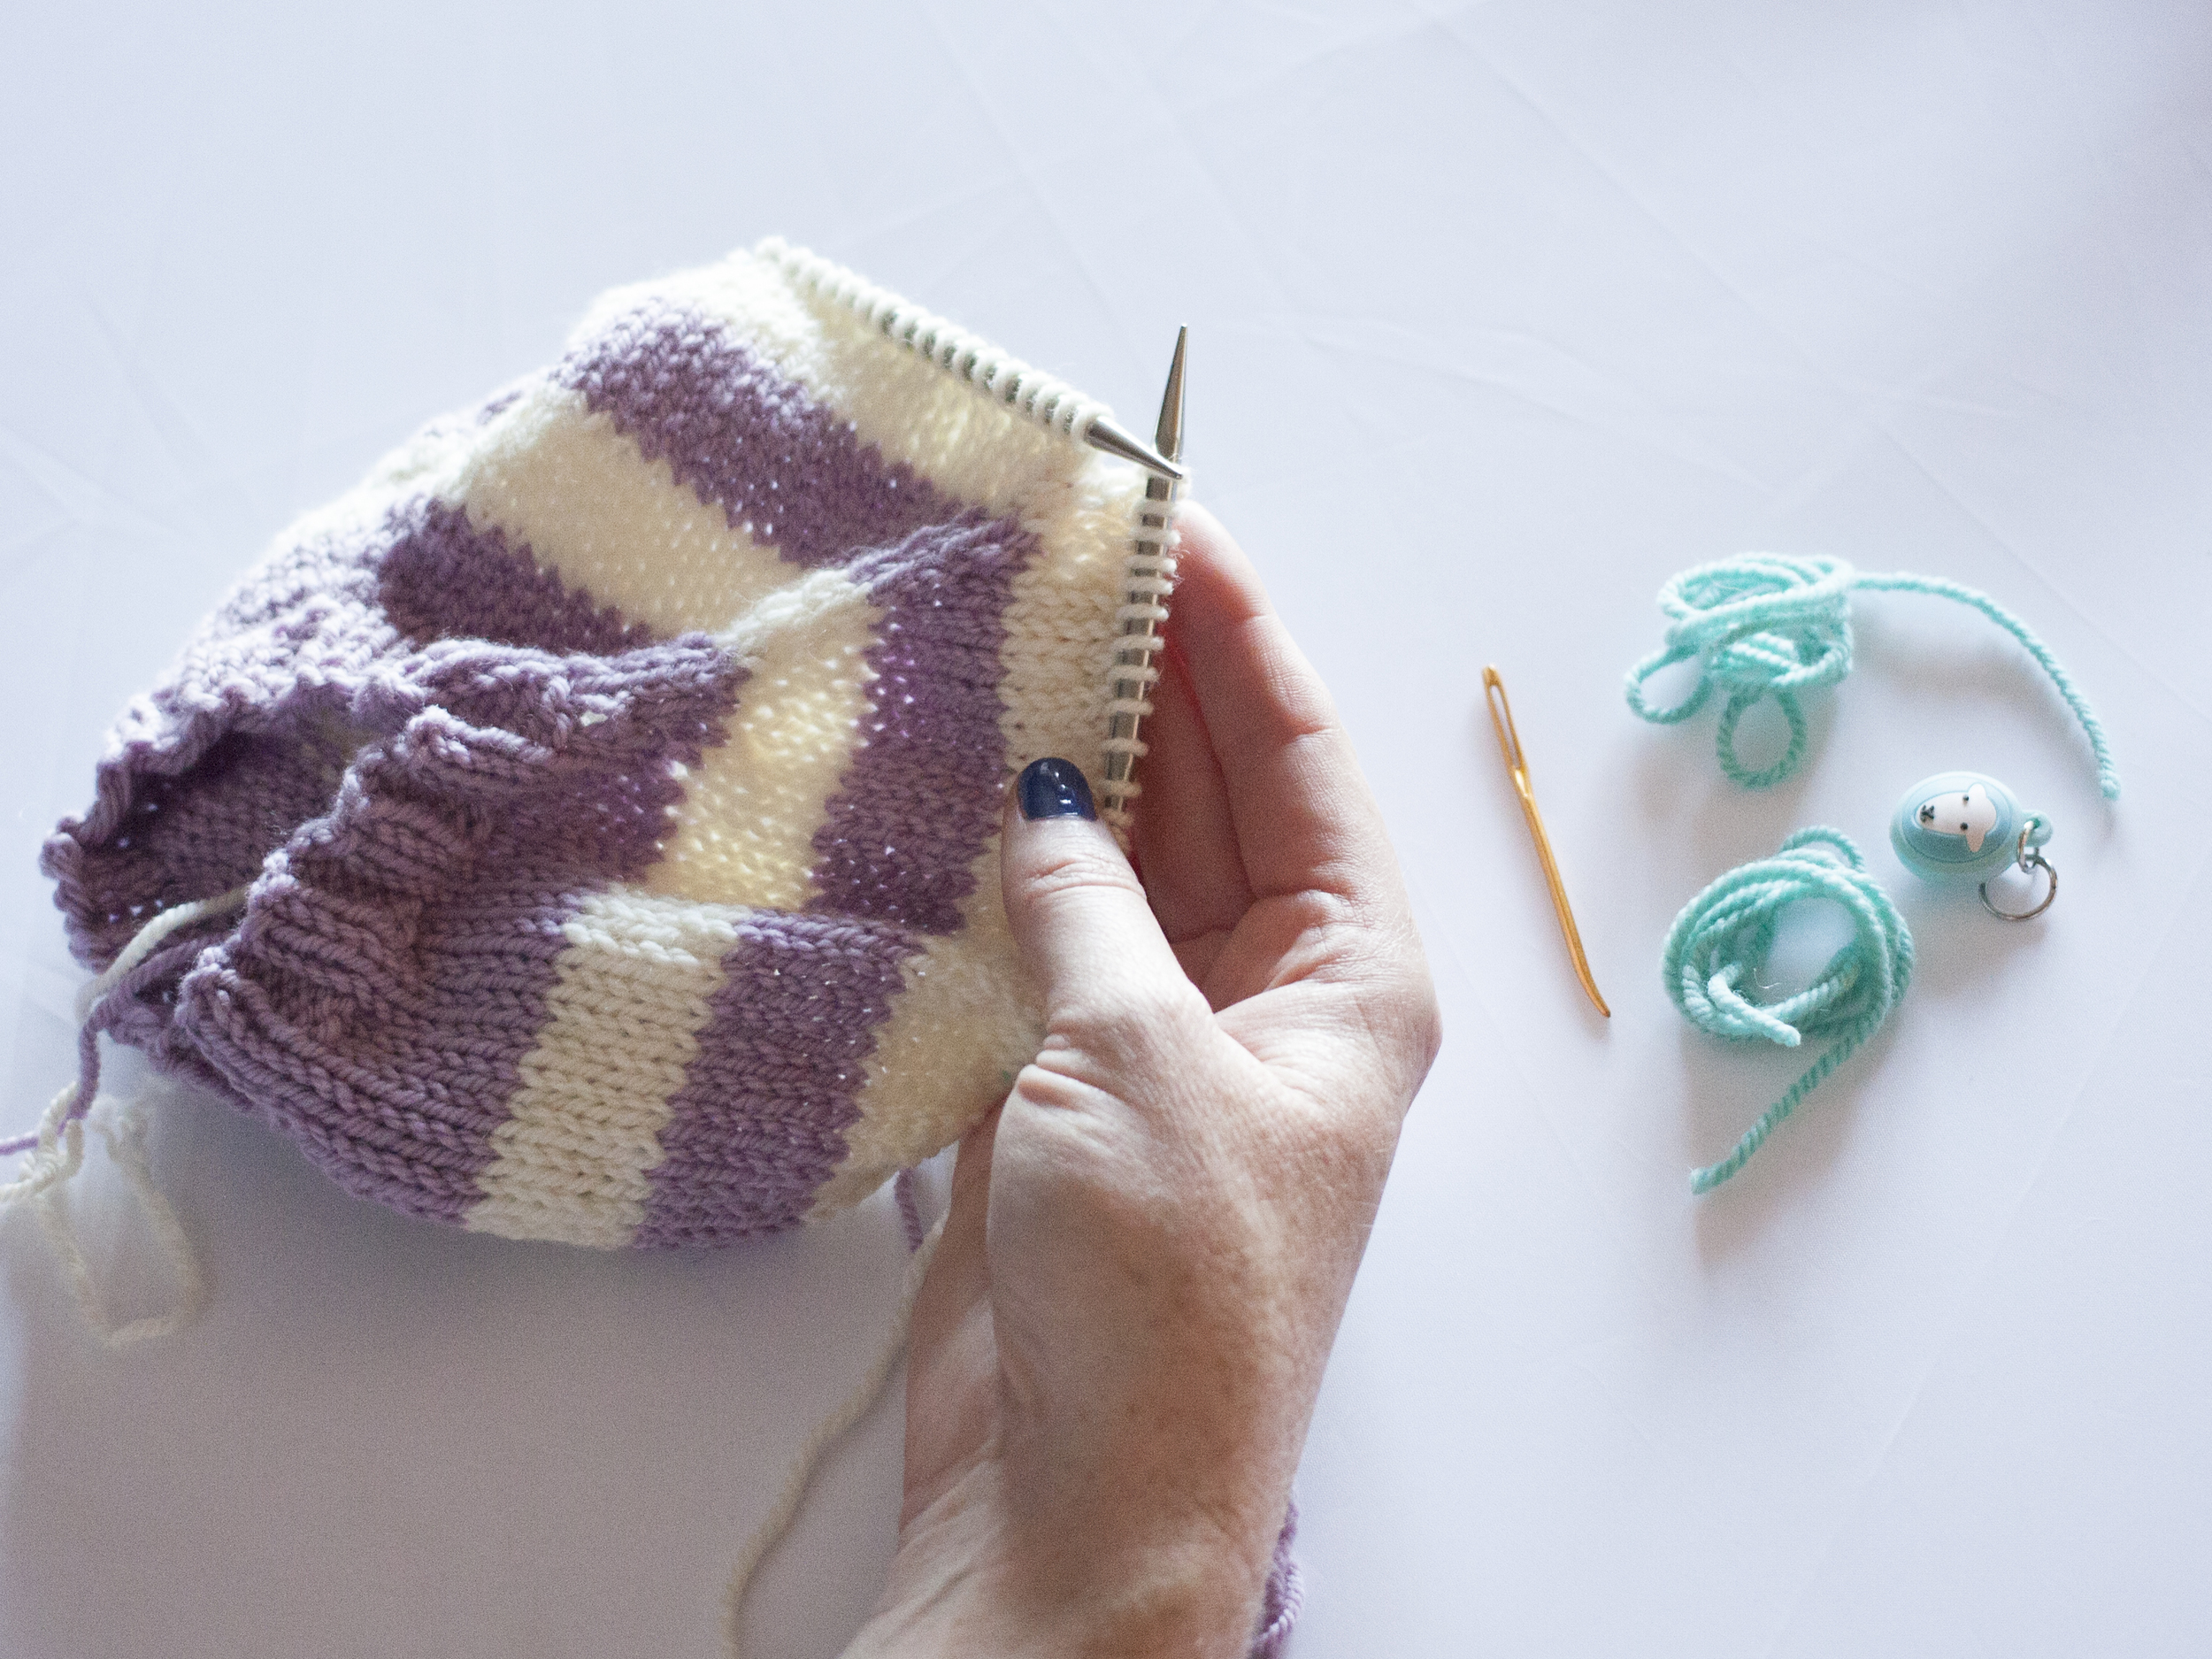 Moving stitches to a stitch holder